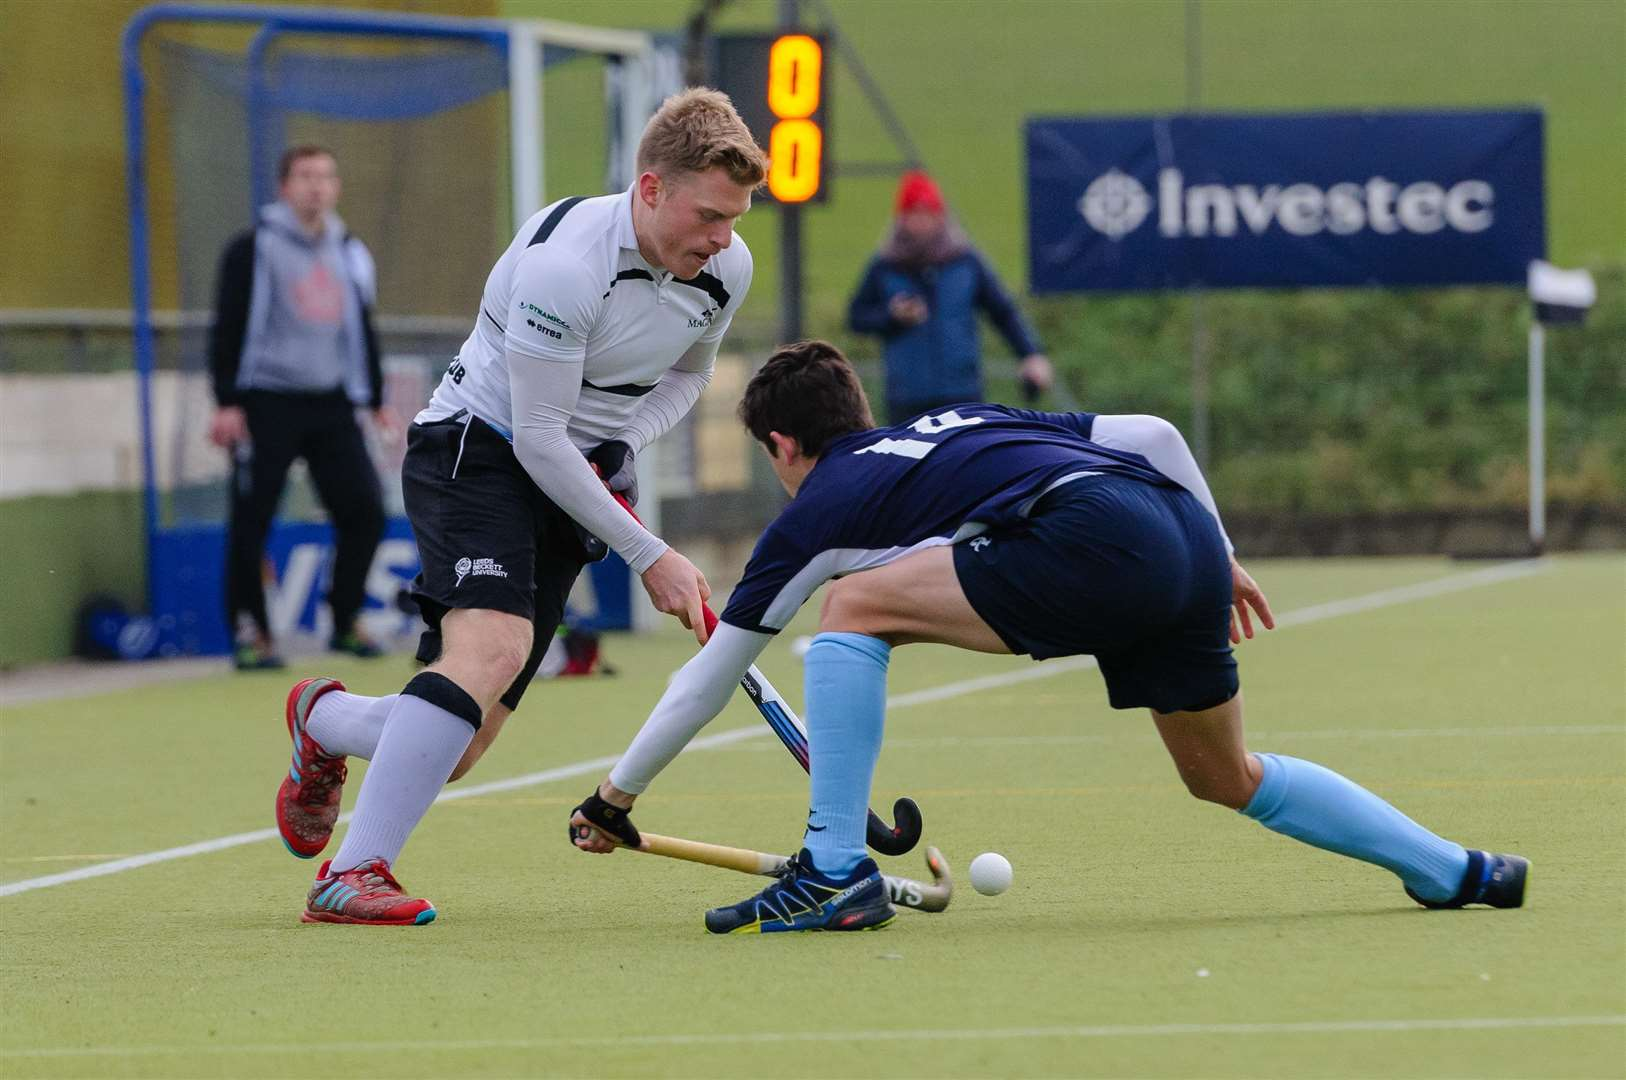 Hockey action from Harleston Magpies Men's 1st v West Herts - Ollie Whiteman..Picture by Mark Bullimore Photography. (6022304)